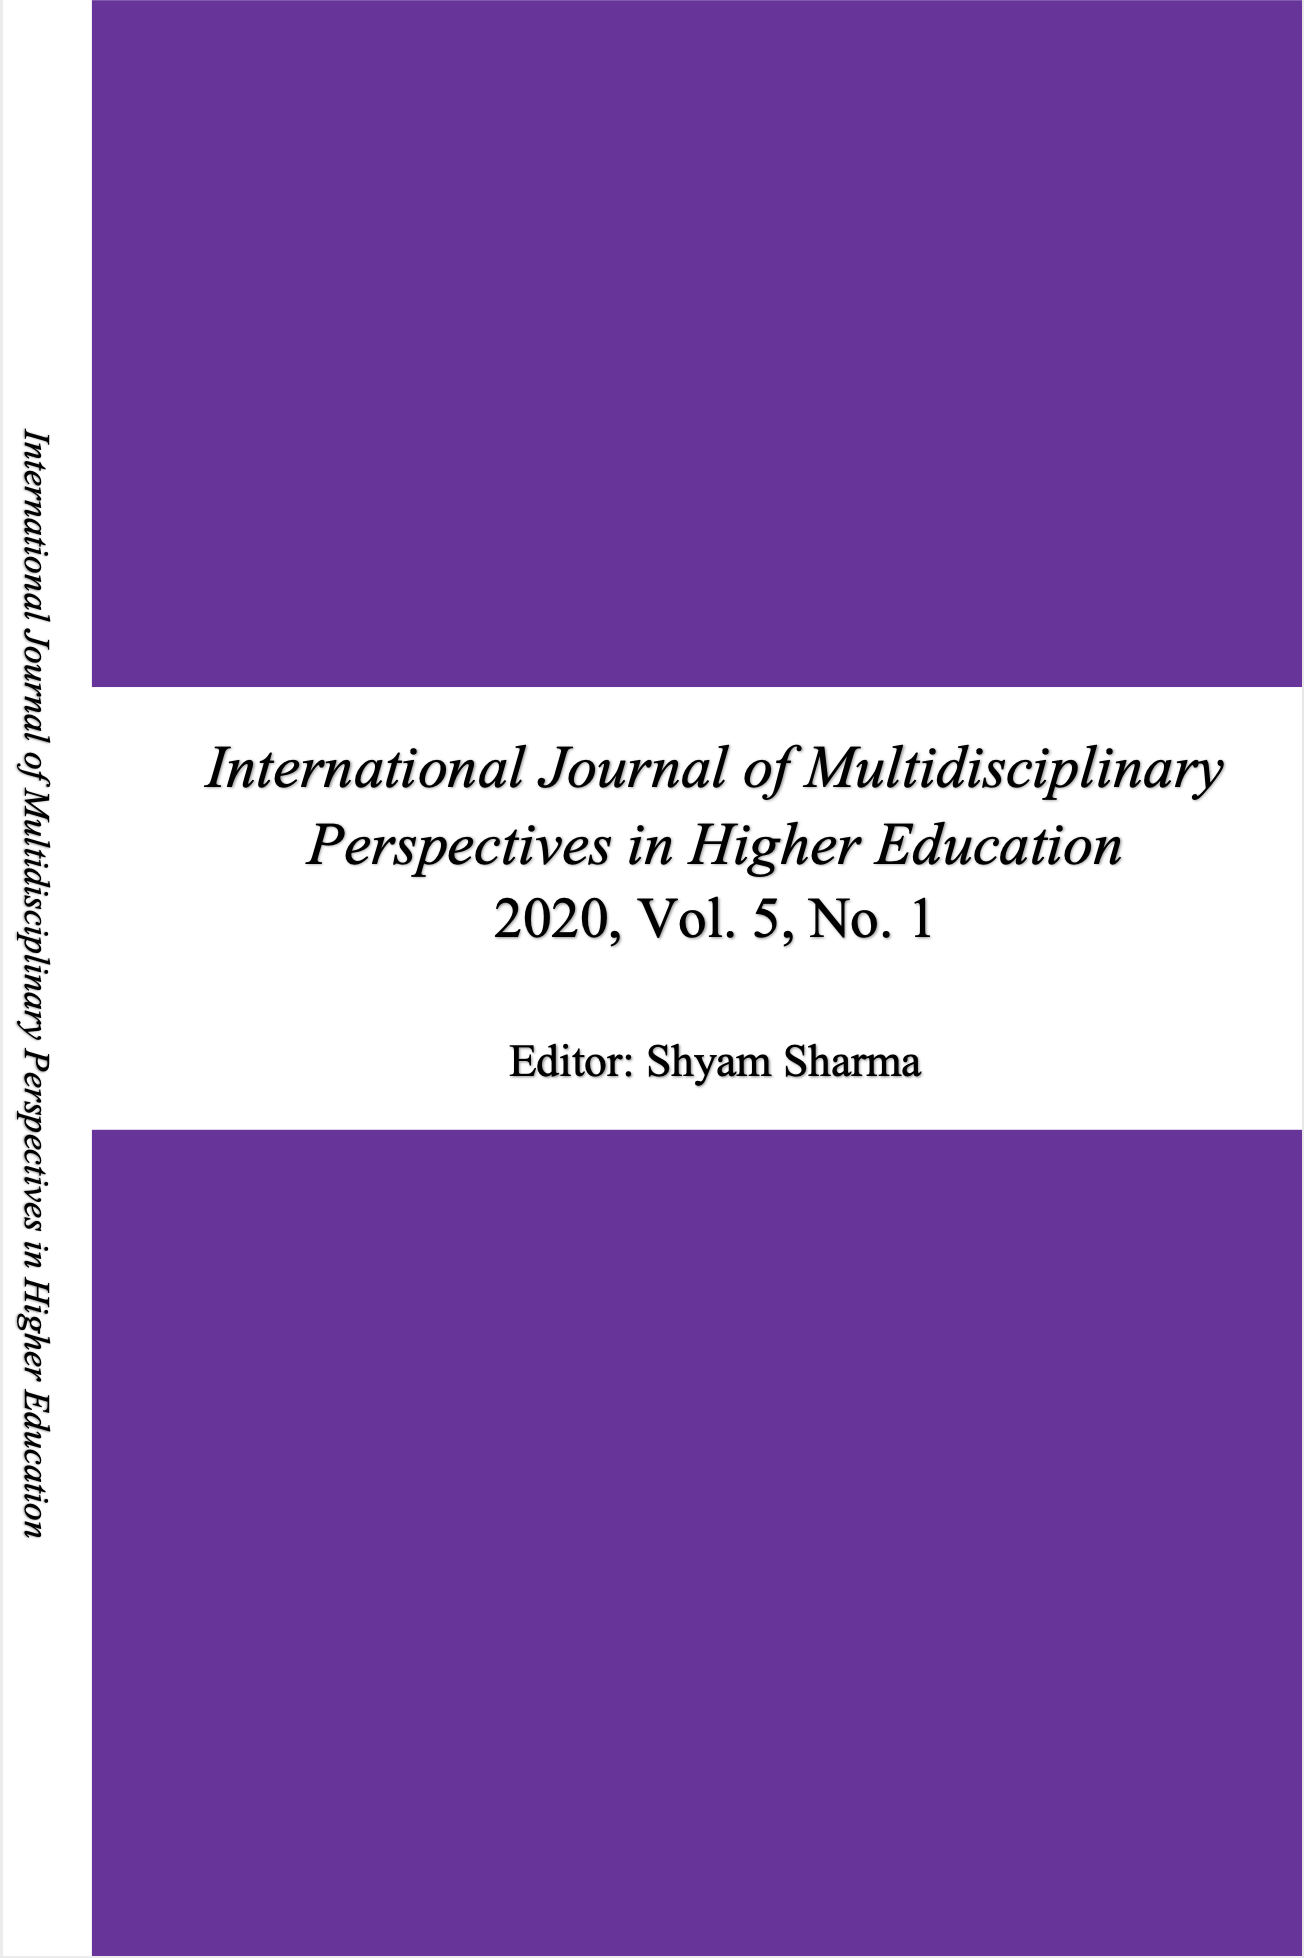 View Vol. 5 No. 1 (2020): International Journal of Multidisciplinary Perspectives in Higher Education